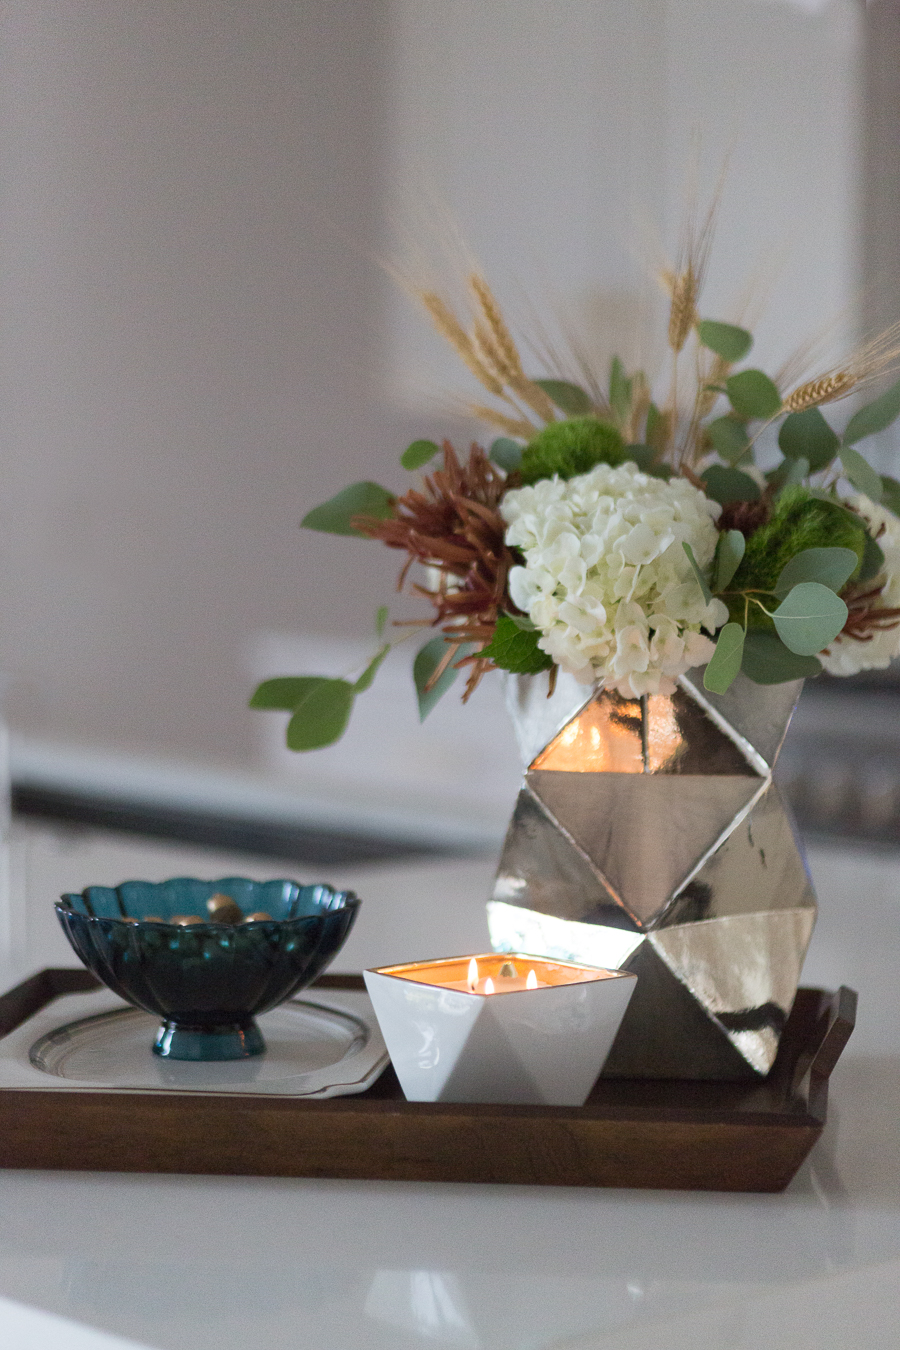 Simple Ways to Decorate for the Holidays from West Elm large wood tray faceted silver vase with hydrangeas and fall flower arrangement scented candle quartz waterfall countertops with gold bar stools